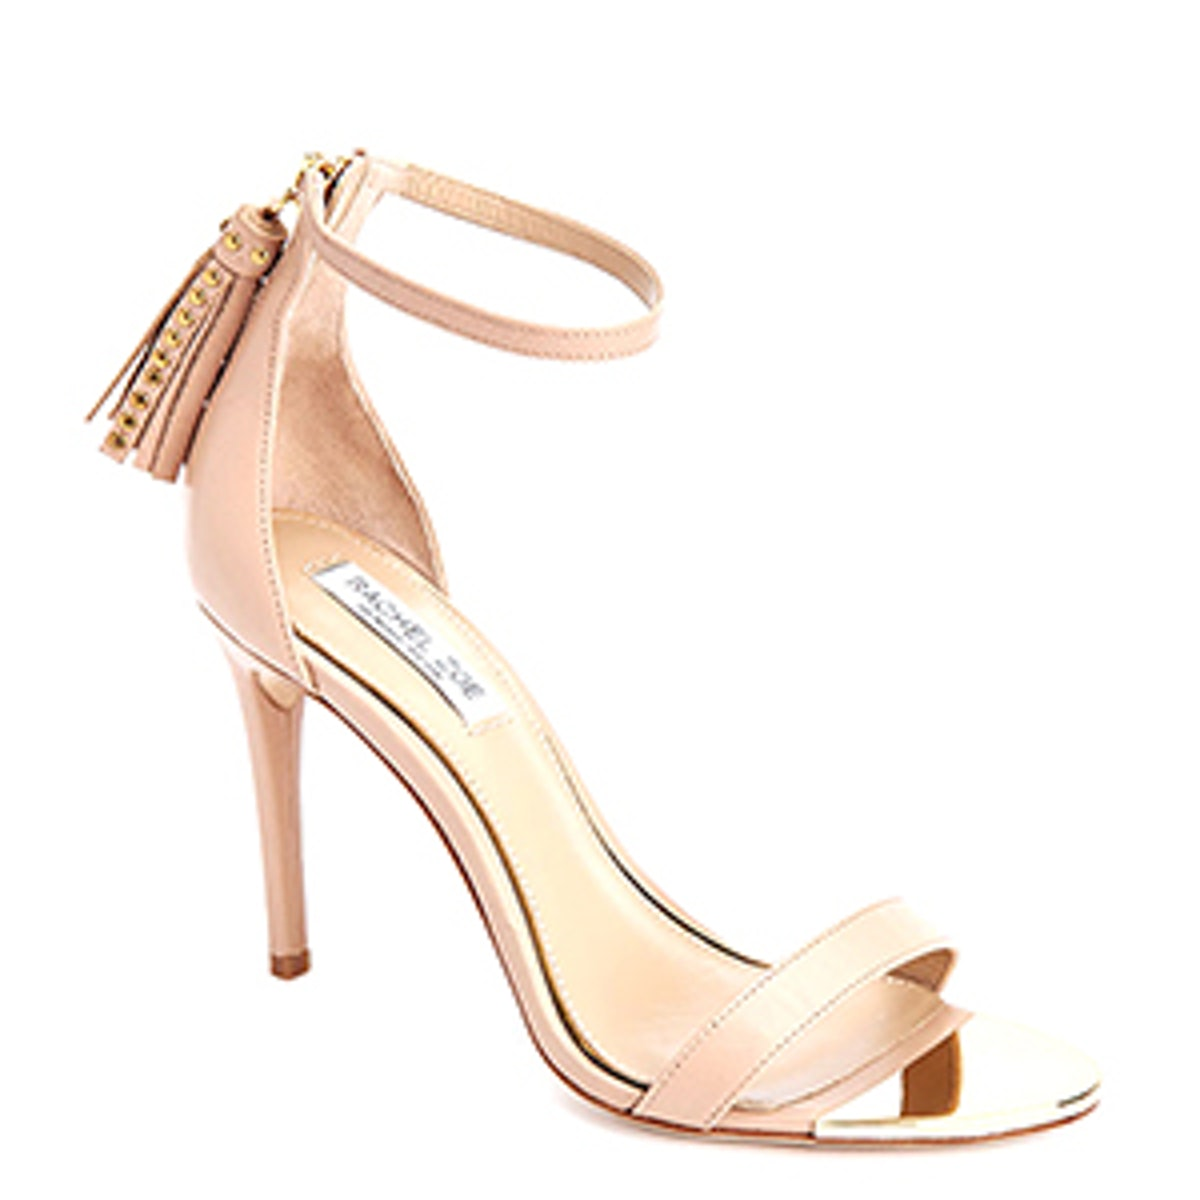 Emaly Tassel Leather Heeled Sandals